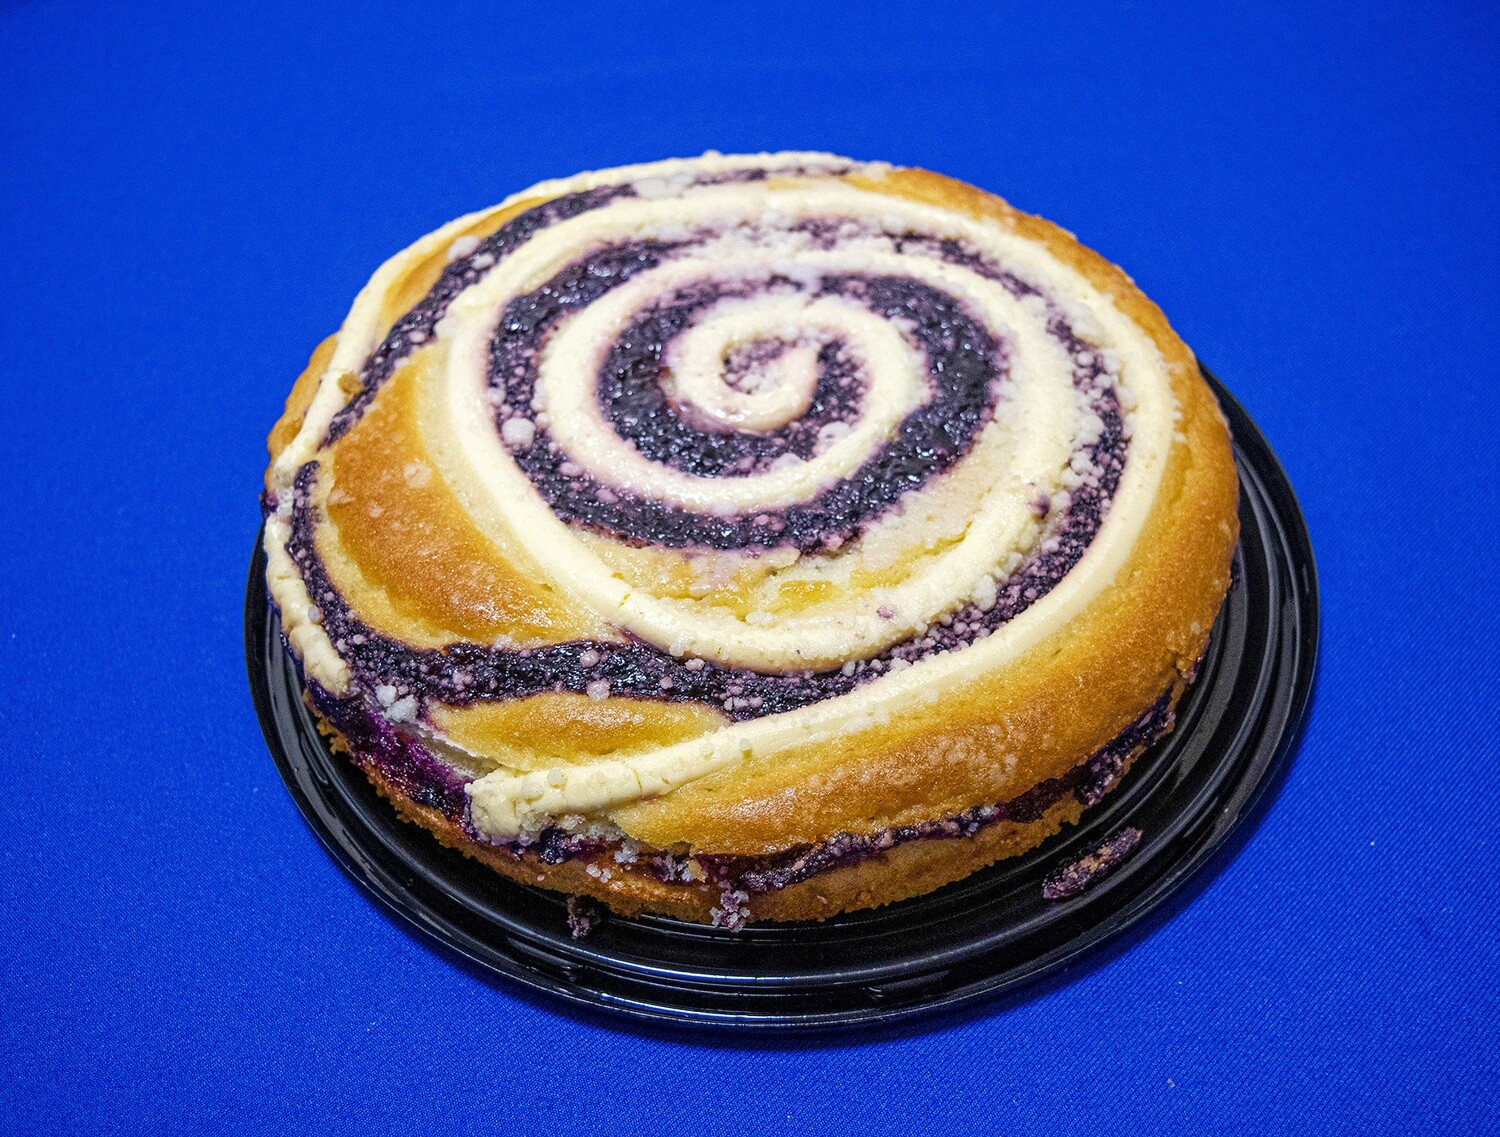 Dave's Coffee Cake - Blueberry Cream Cheese